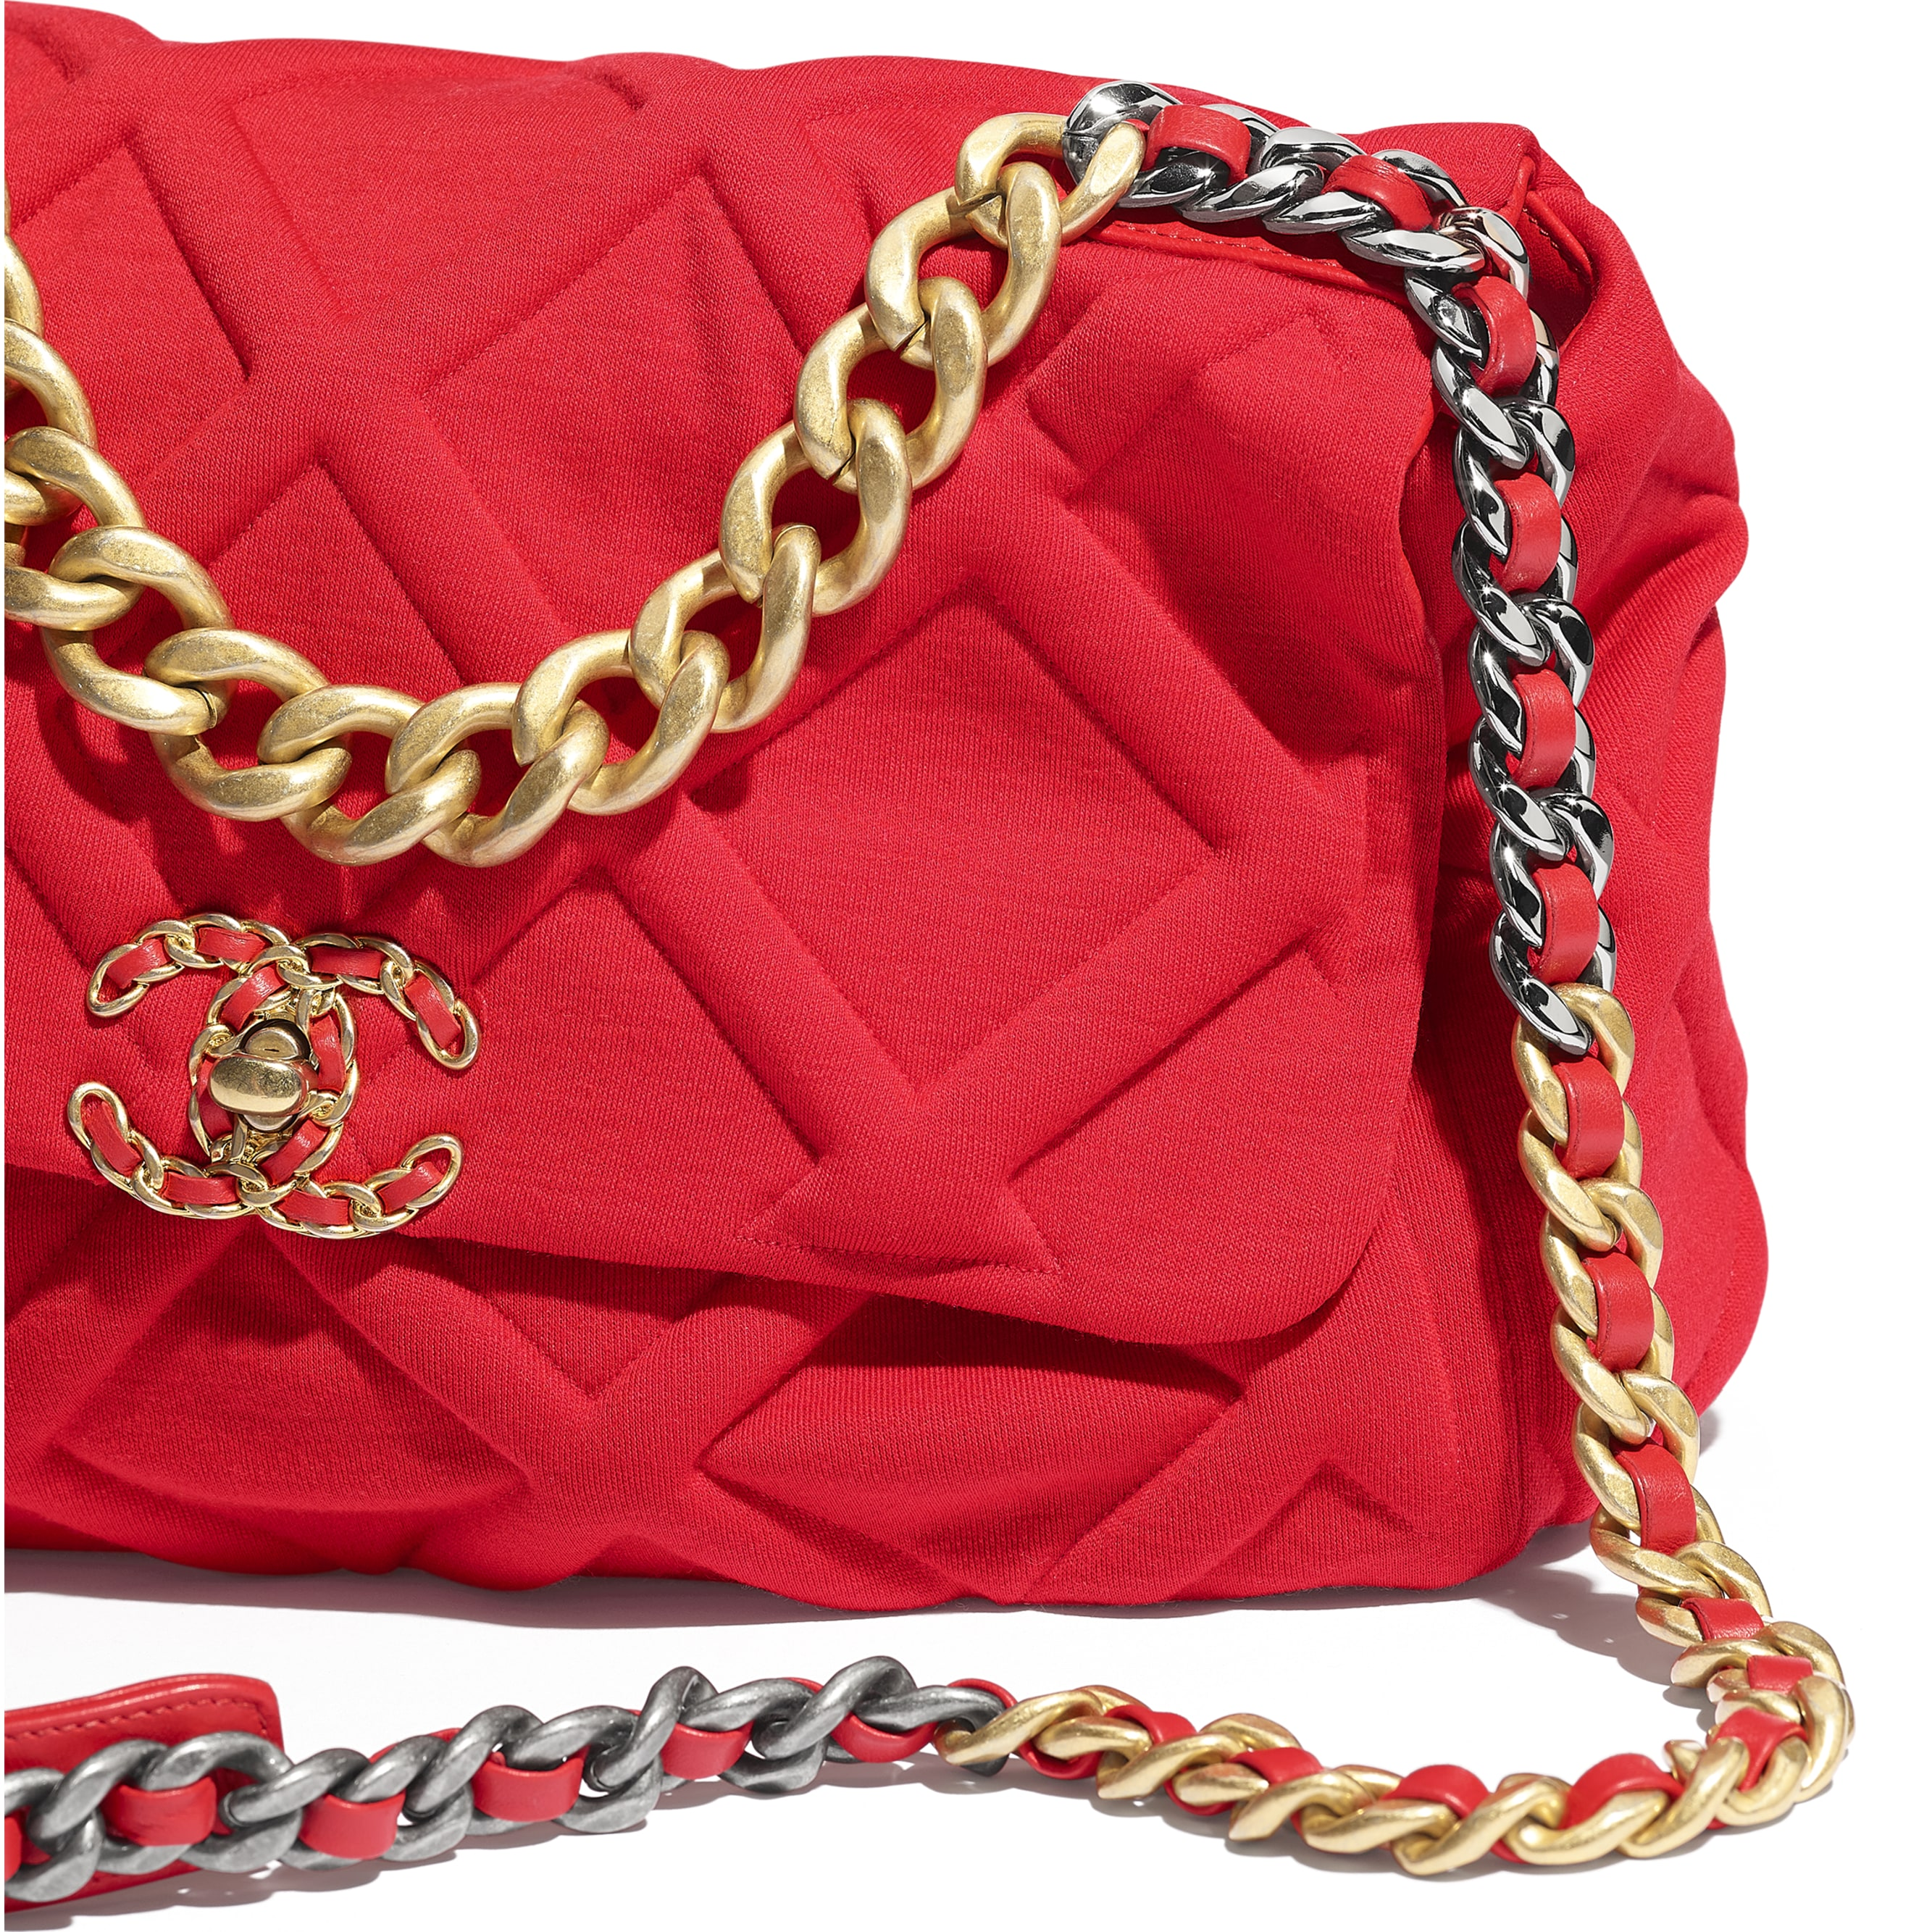 CHANEL 19 Large Flap Bag - Red - Jersey, Gold-Tone, Silver-Tone & Ruthenium-Finish Metal - Extra view - see standard sized version